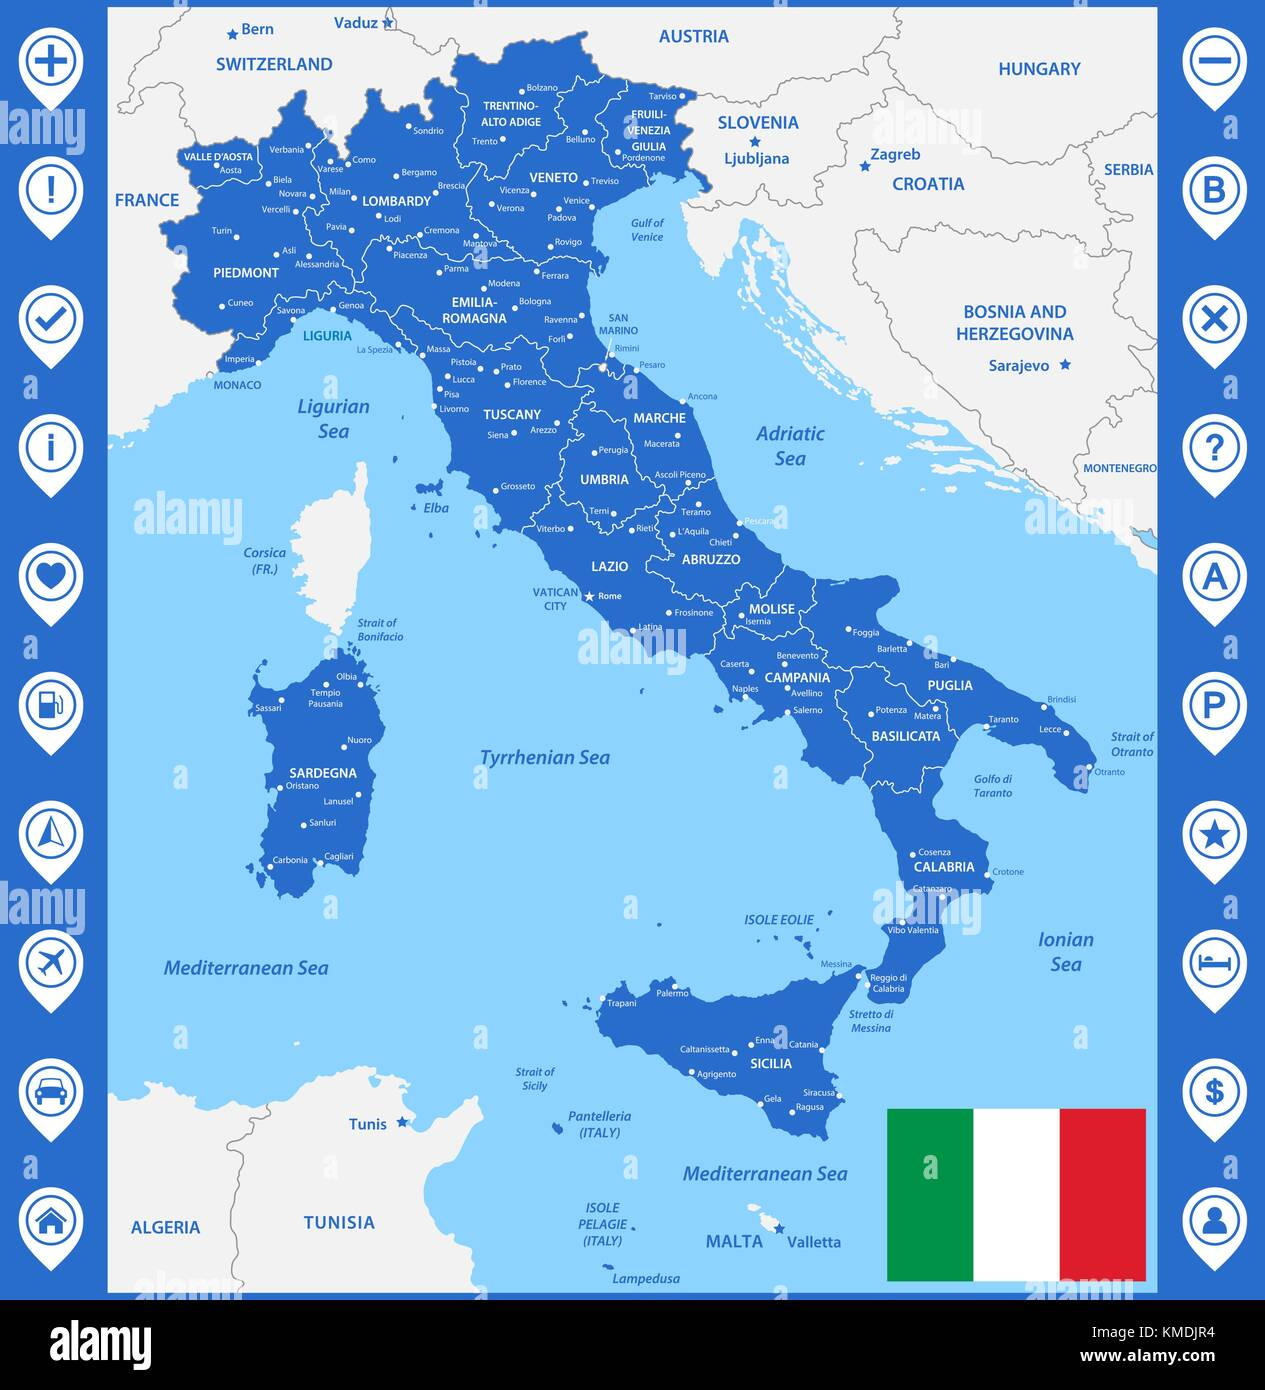 Capital Of Italy Map.The Detailed Map Of The Italy With Regions Or States And Cities